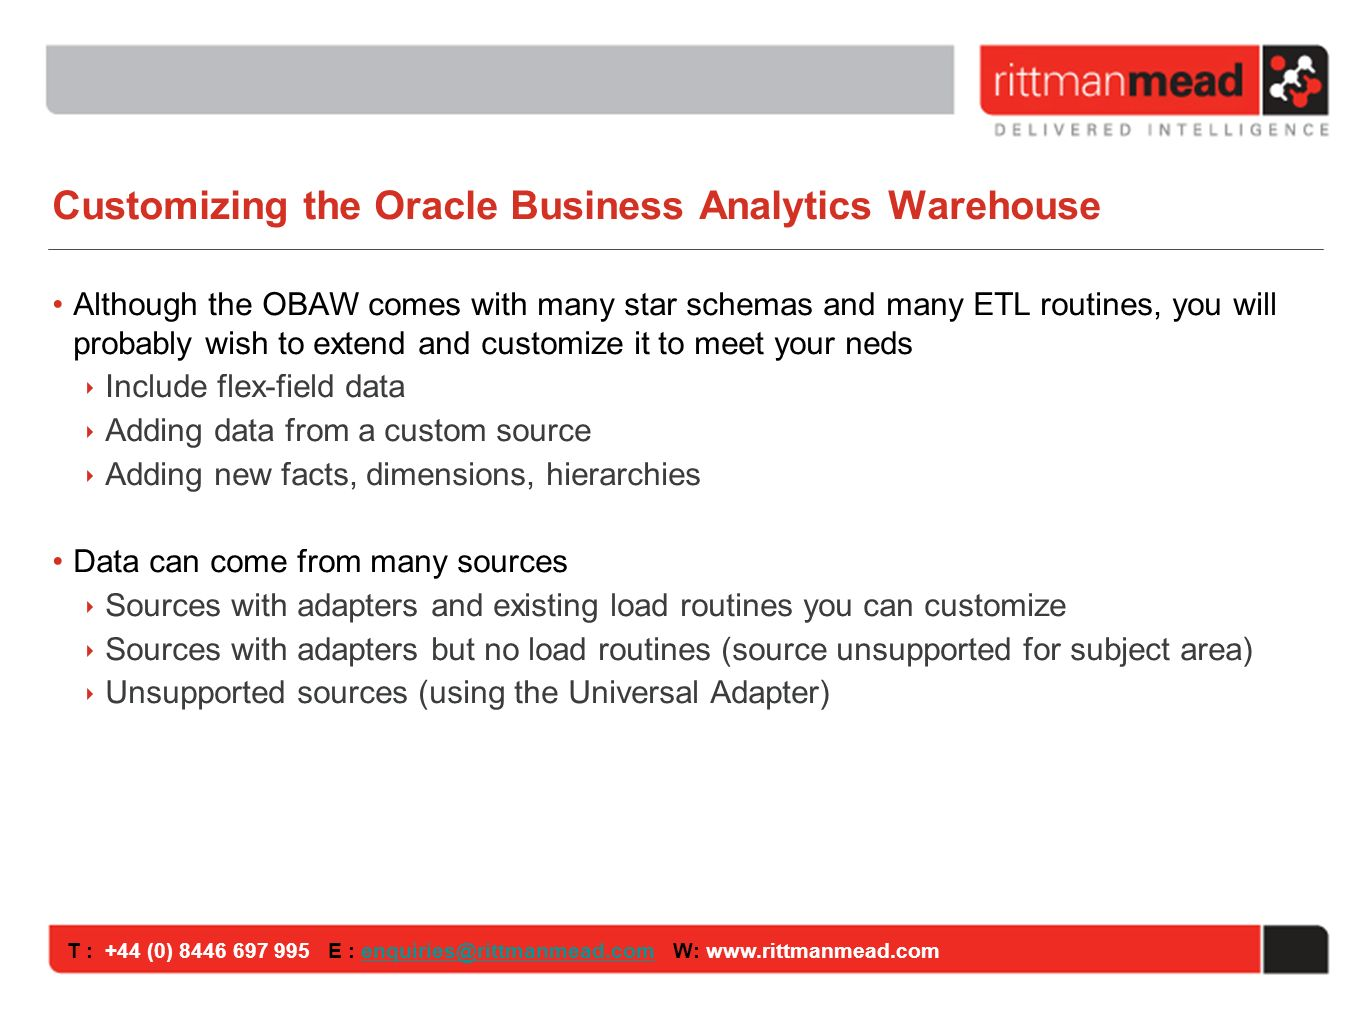 T : +44 (0) E : W: Customizing the Oracle Business Analytics Warehouse Although the OBAW comes with many star schemas and many ETL routines, you will probably wish to extend and customize it to meet your neds Include flex-field data Adding data from a custom source Adding new facts, dimensions, hierarchies Data can come from many sources Sources with adapters and existing load routines you can customize Sources with adapters but no load routines (source unsupported for subject area) Unsupported sources (using the Universal Adapter)